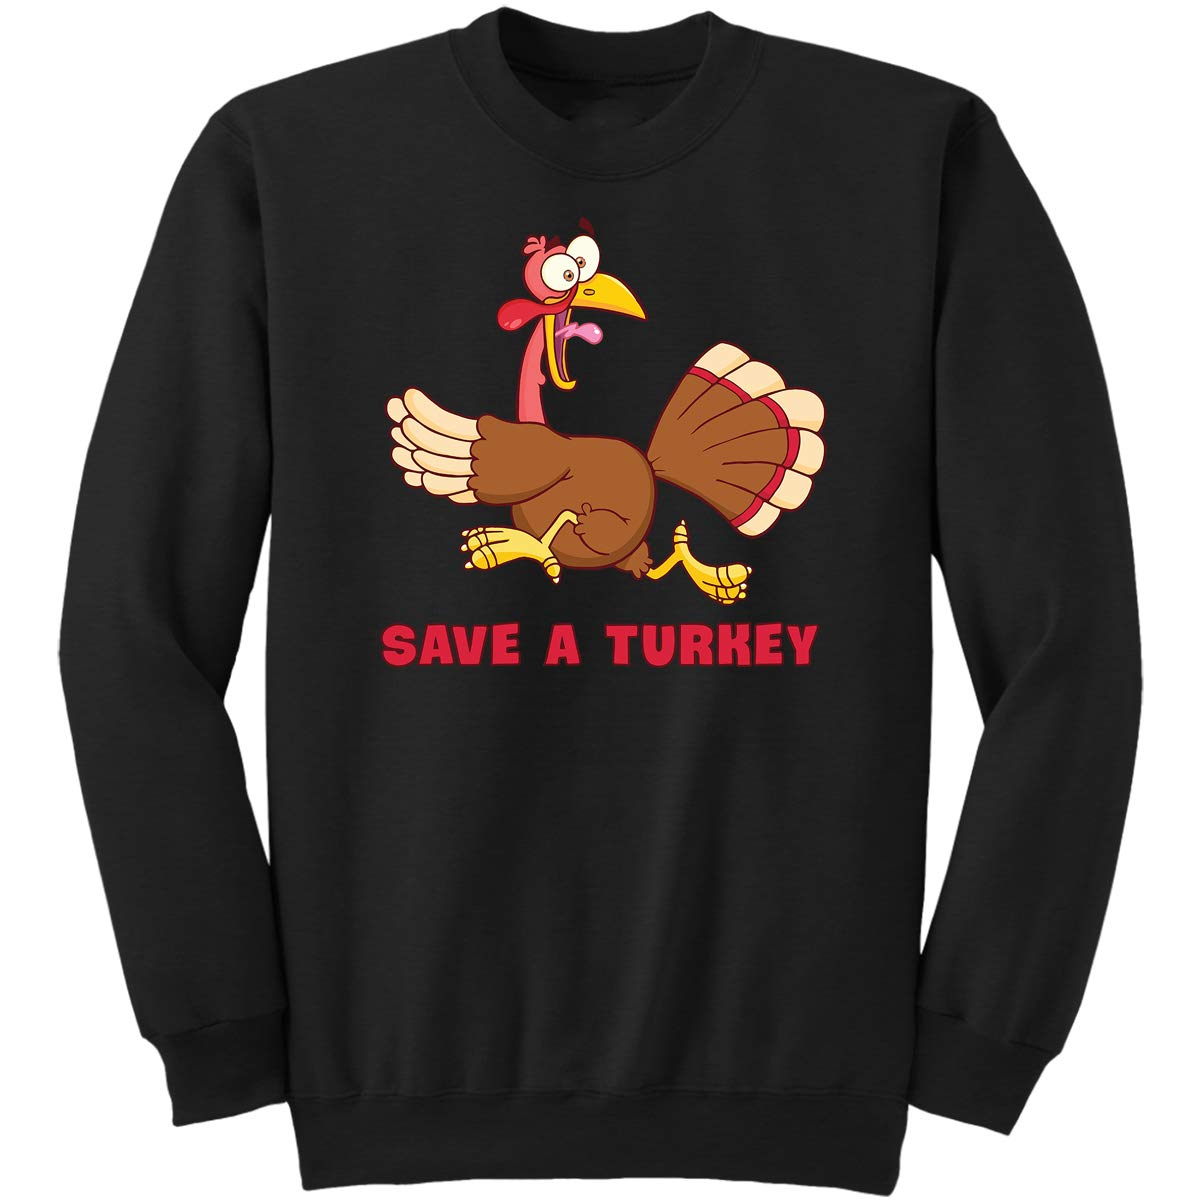 Funny Turkey Sign for Mens Womens Sweatshirt DoozyGifts99 Save A Turkey Thanksgiving Gifts